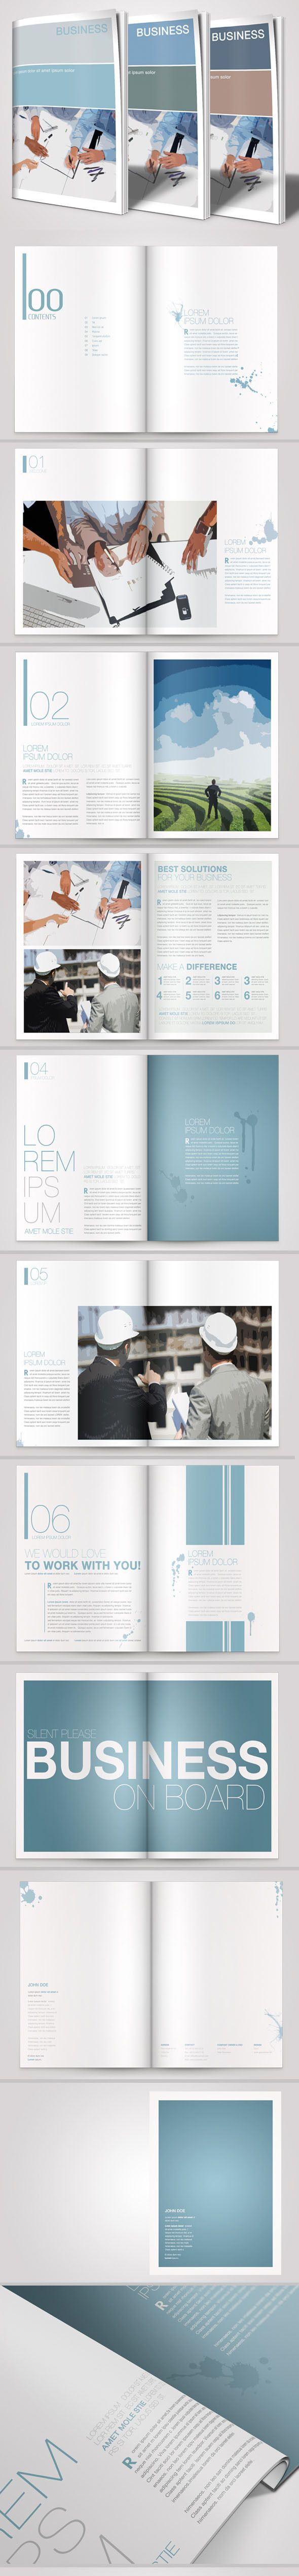 A4 Business Brochure Vol. 01 by Danijel Mokic, via Behance